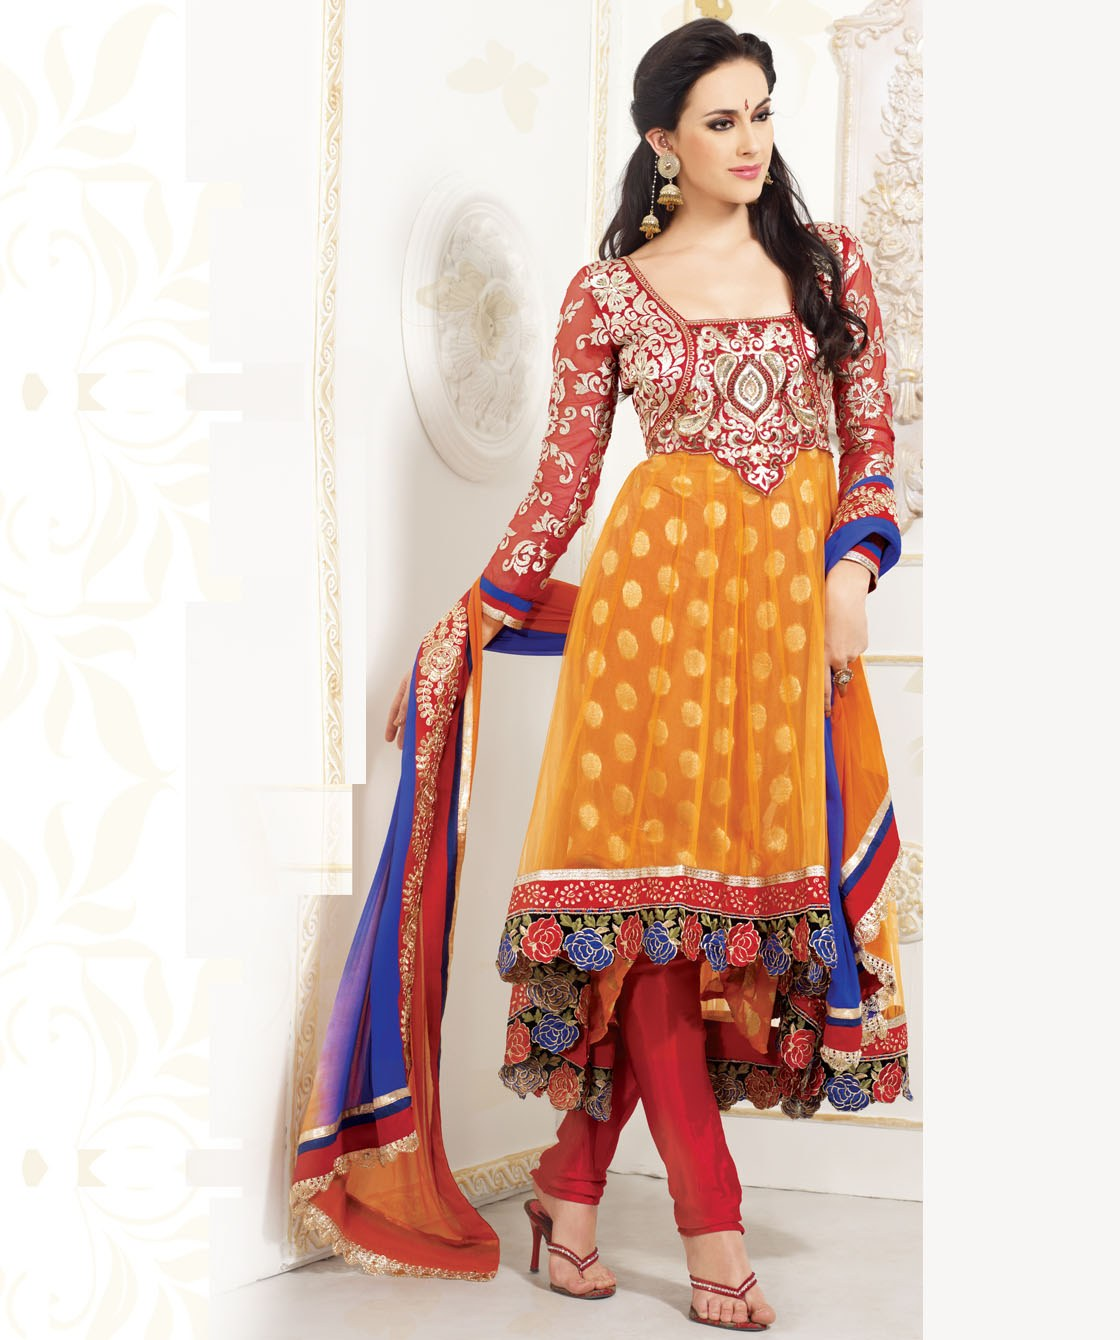 Indian Designer Clothes Clothing kiran s designer